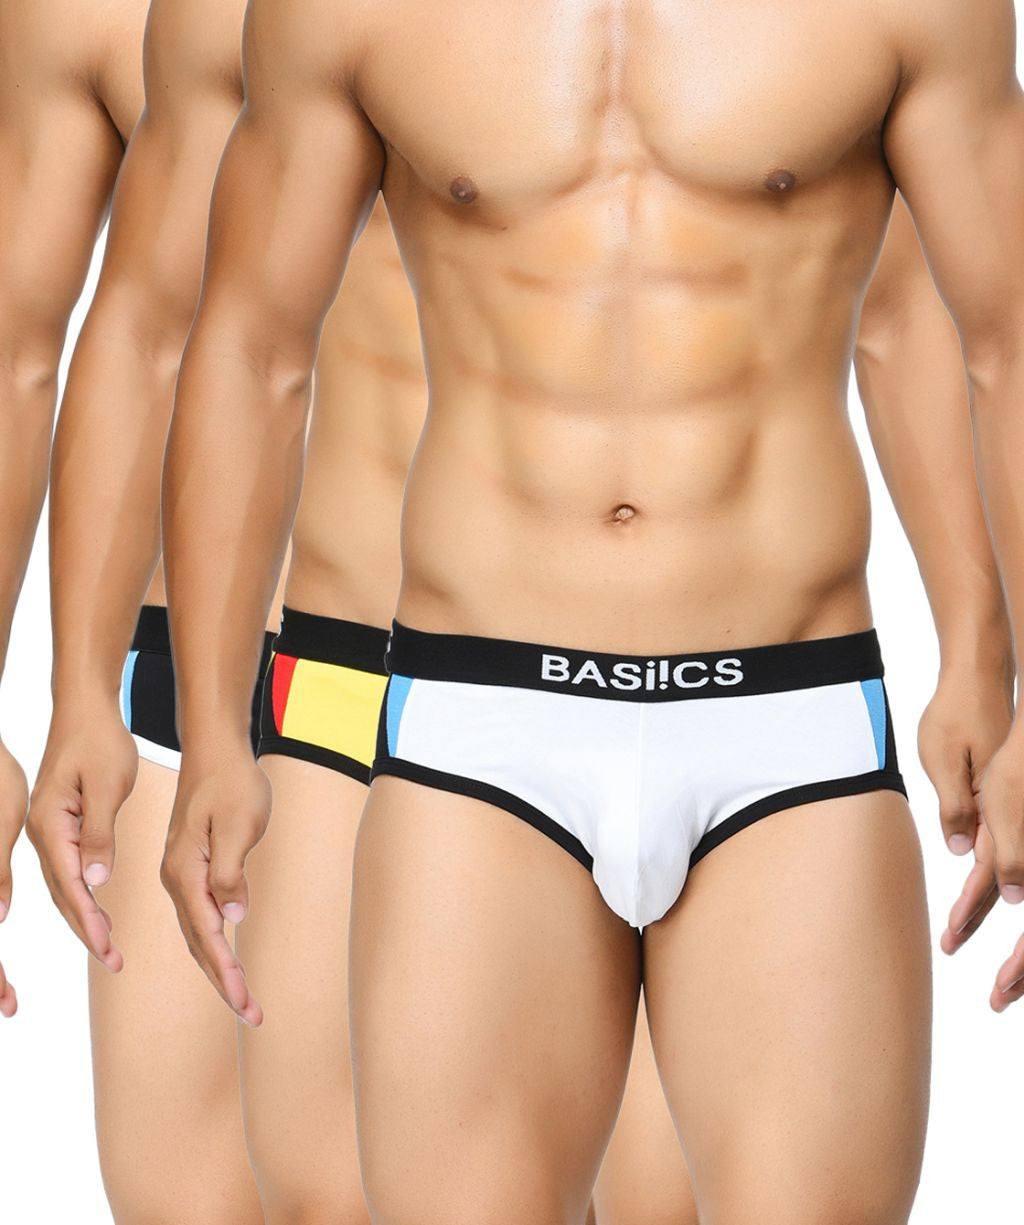 BASIICS Men Modern Pattern Cotton Spandex Briefs Pack of 3